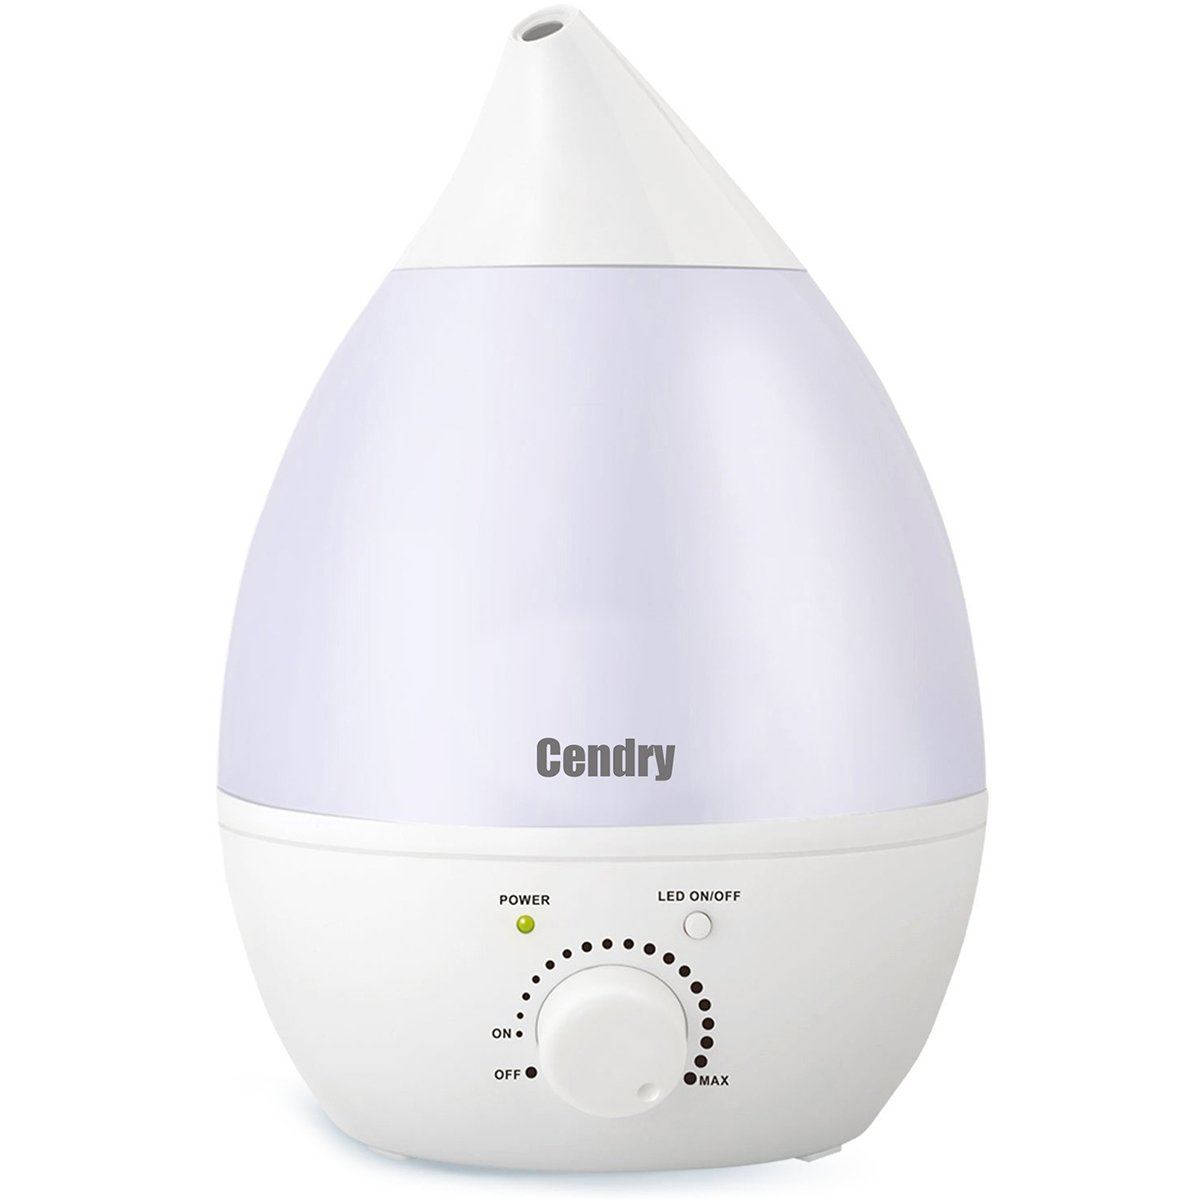 Ultrasonic Cool Mist Humidifier & Aromatherapy Essential Oil Diffuser, 1.3L/0.35Gallons Auto Shut-Off Quiet Humidifier For Bedroom Baby Room Kids and Office With Night Light Function & Filter